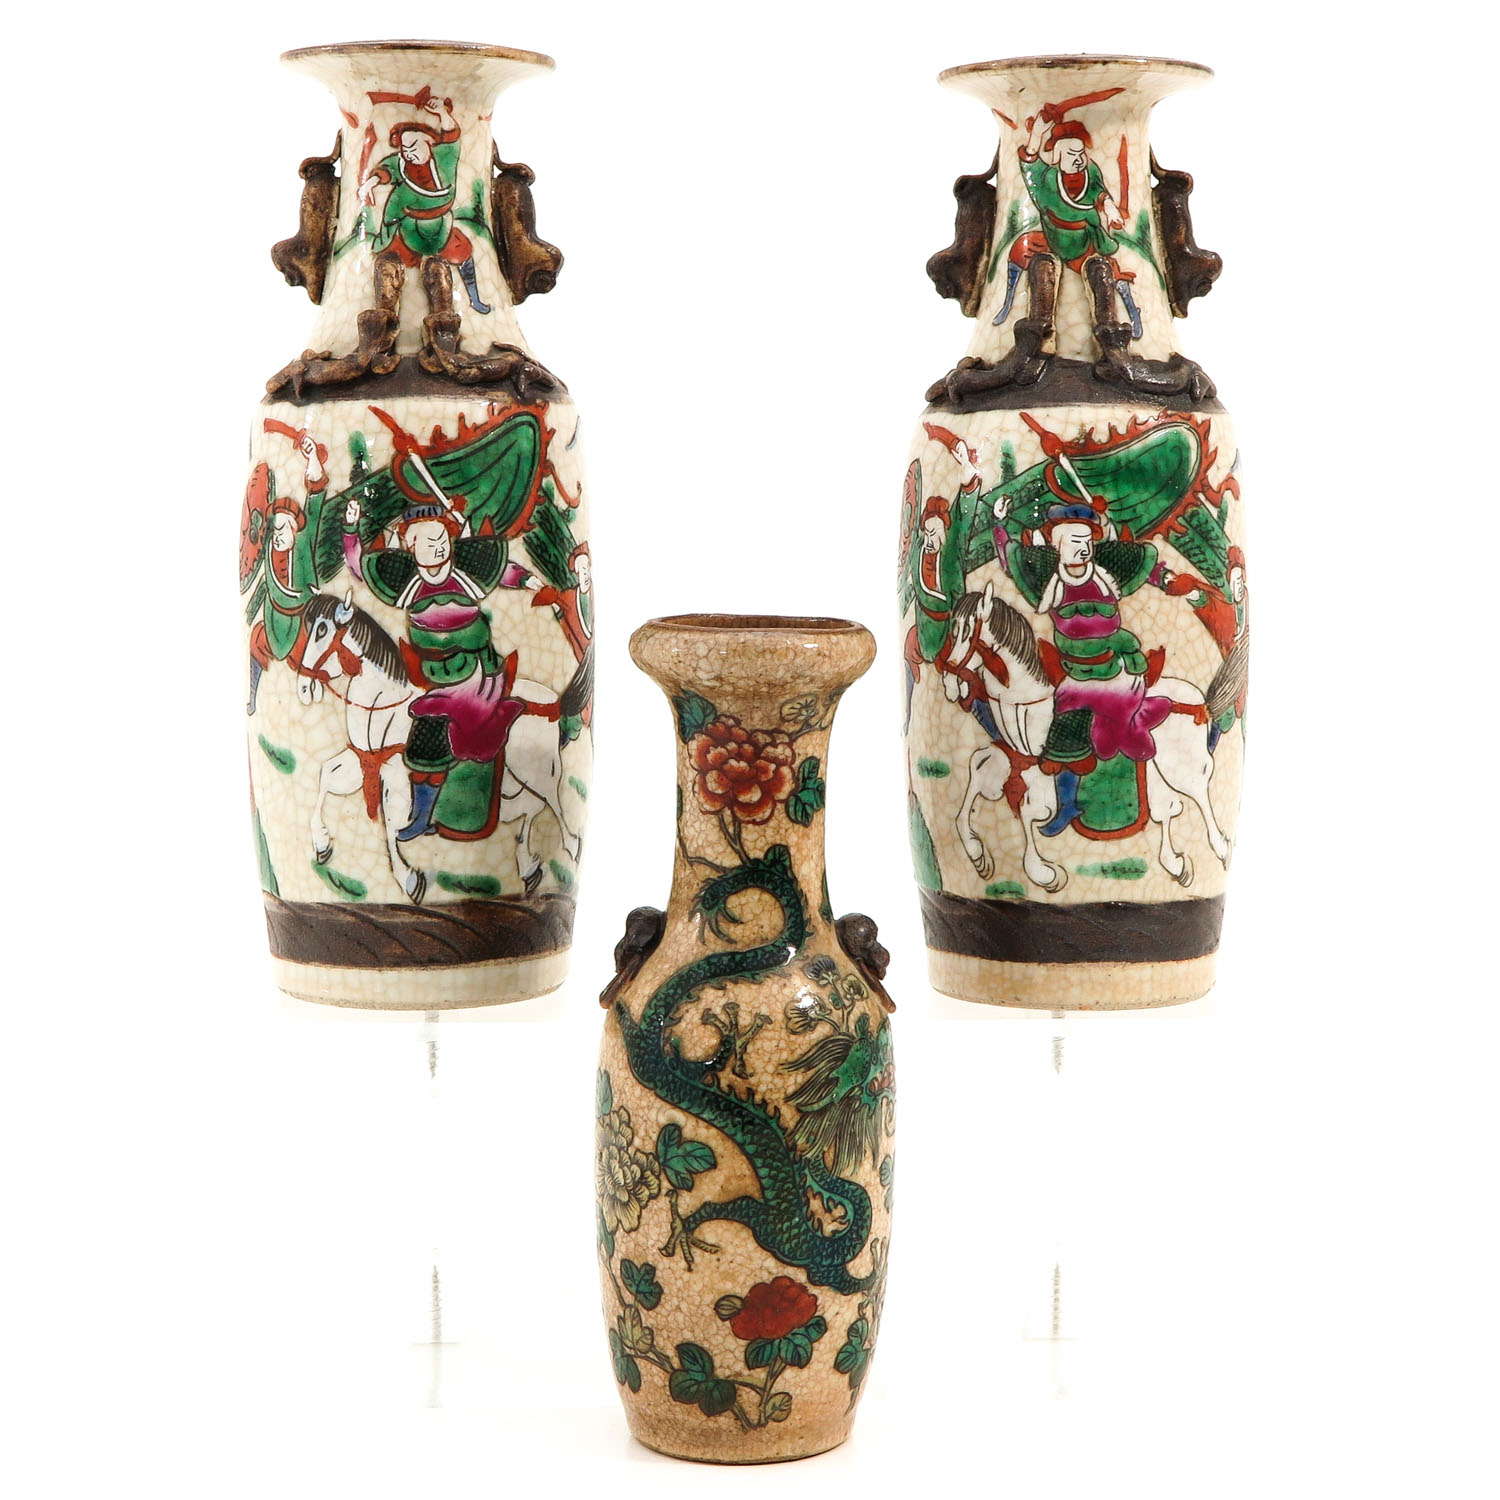 A Collection of 3 Nanking Vases - Image 3 of 9